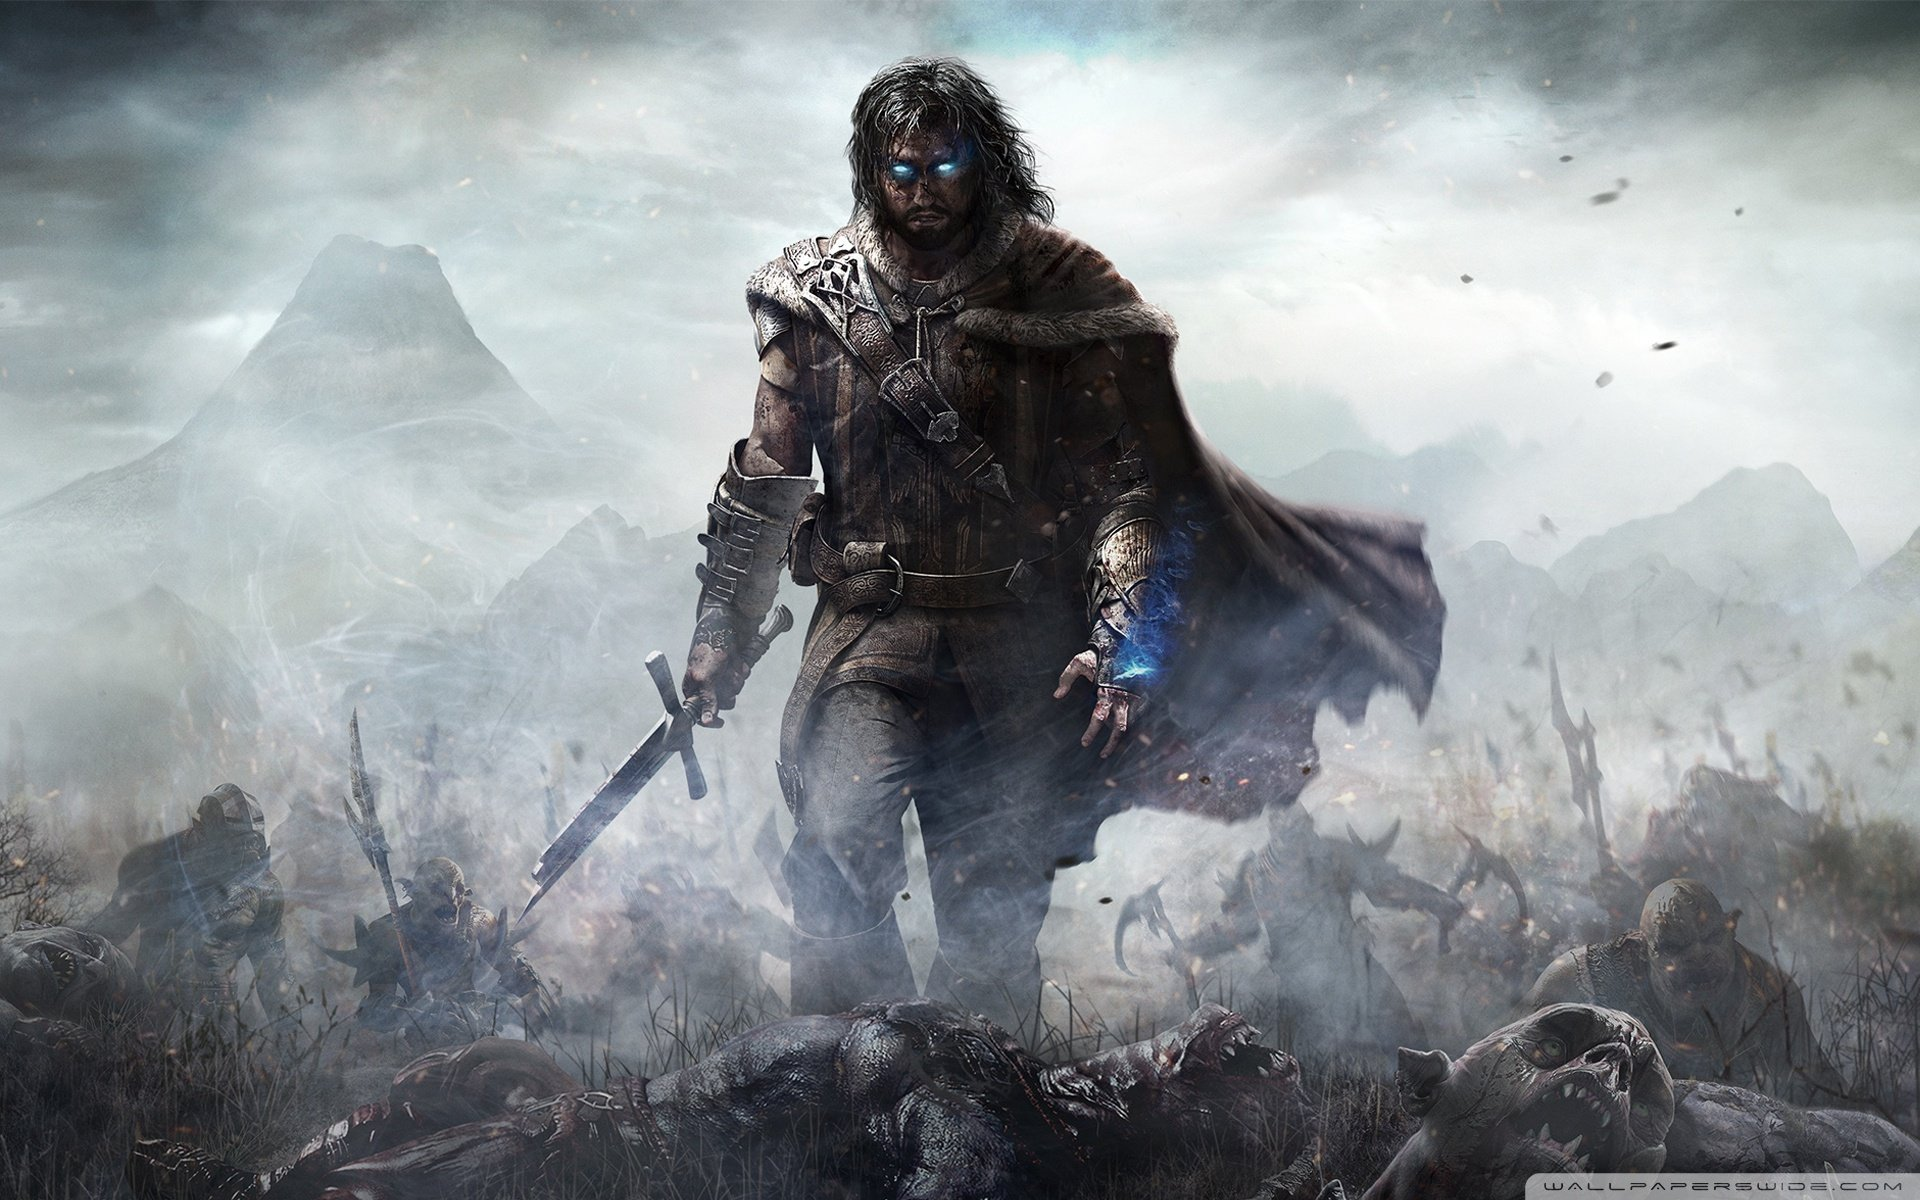 Shadow Of Mordor Wallpaper: Middle Earth Shadow Of Mordor-wallpaper-1920x1200